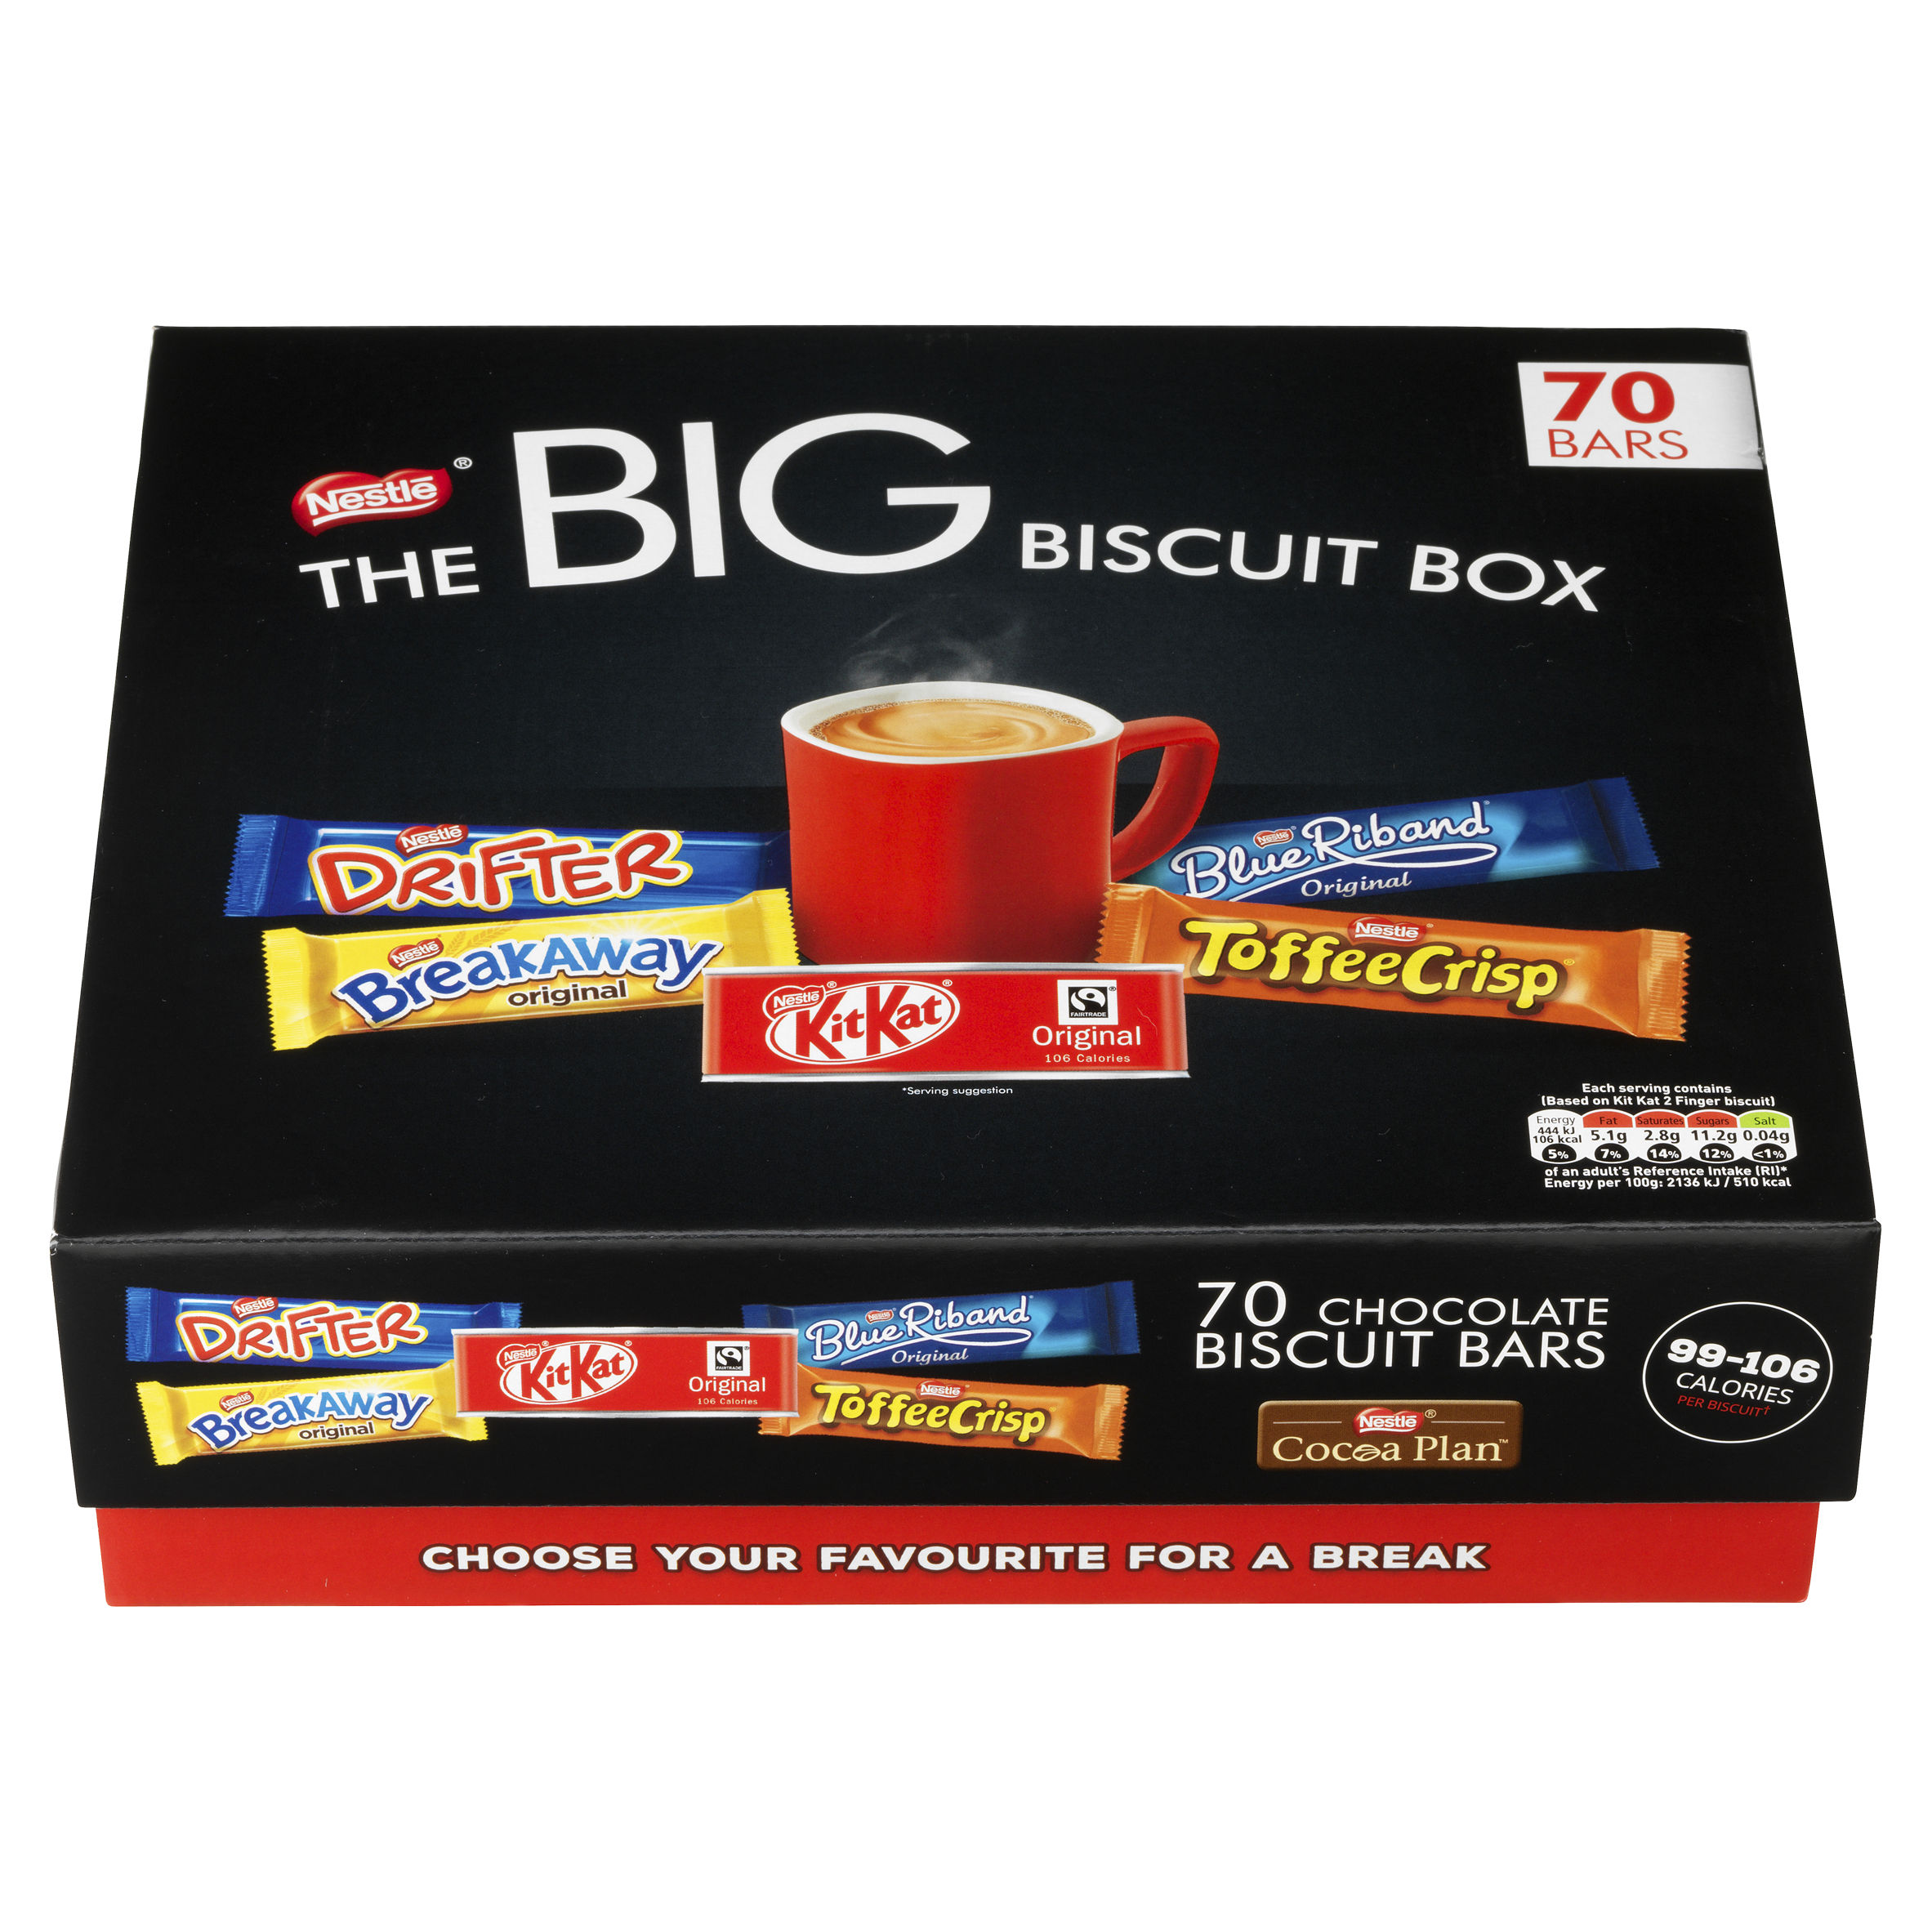 Biscuits Nestle Big Biscuit Box